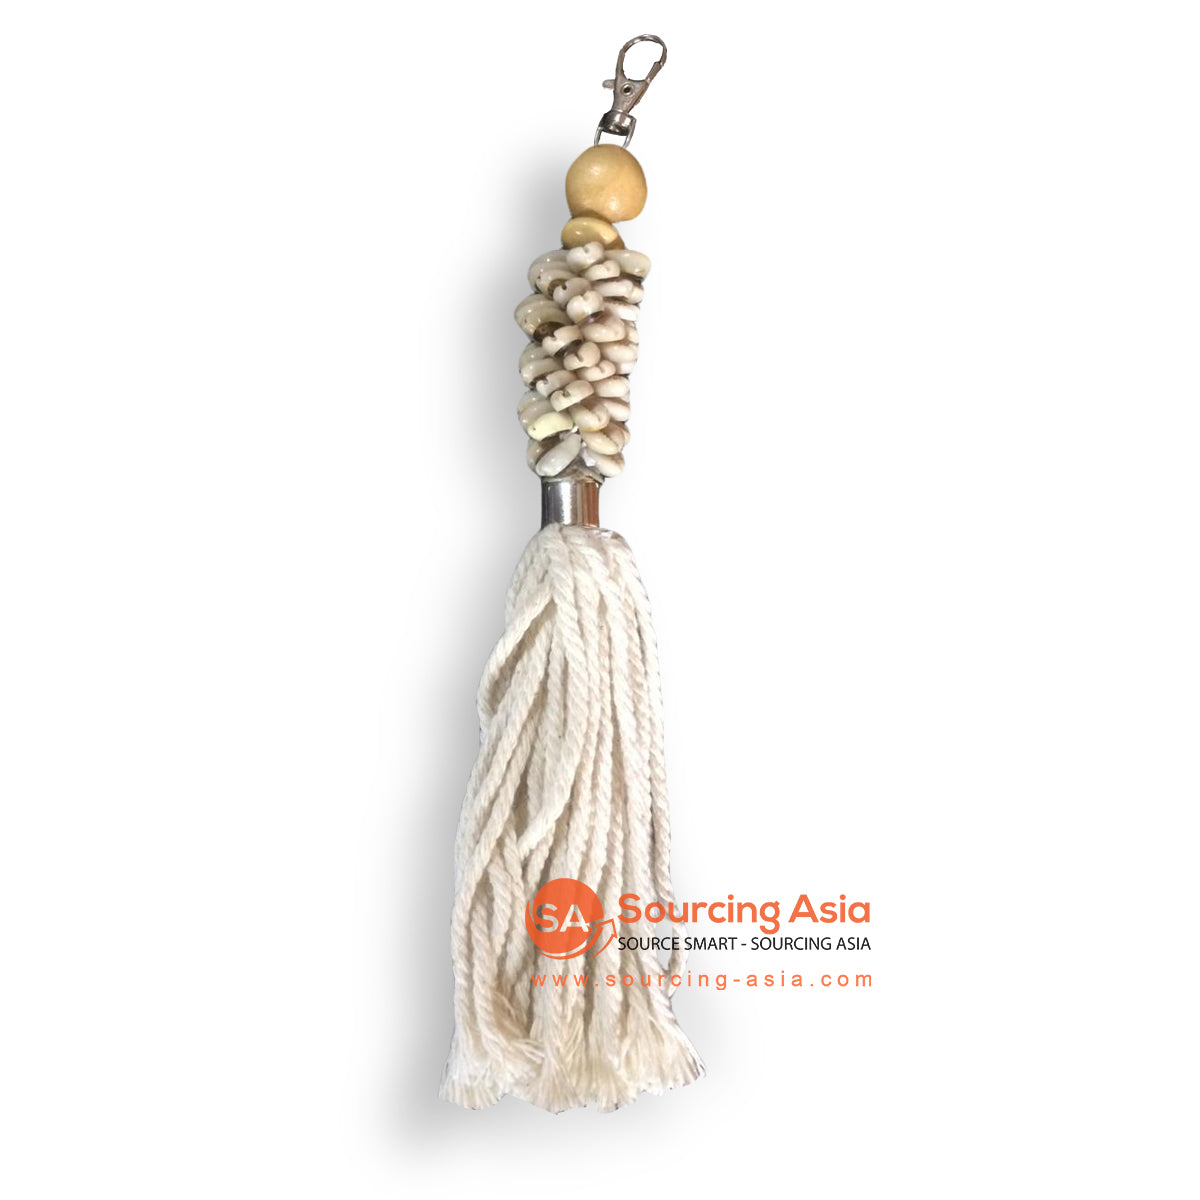 NST010 SHELL AND TASSEL KEY RING